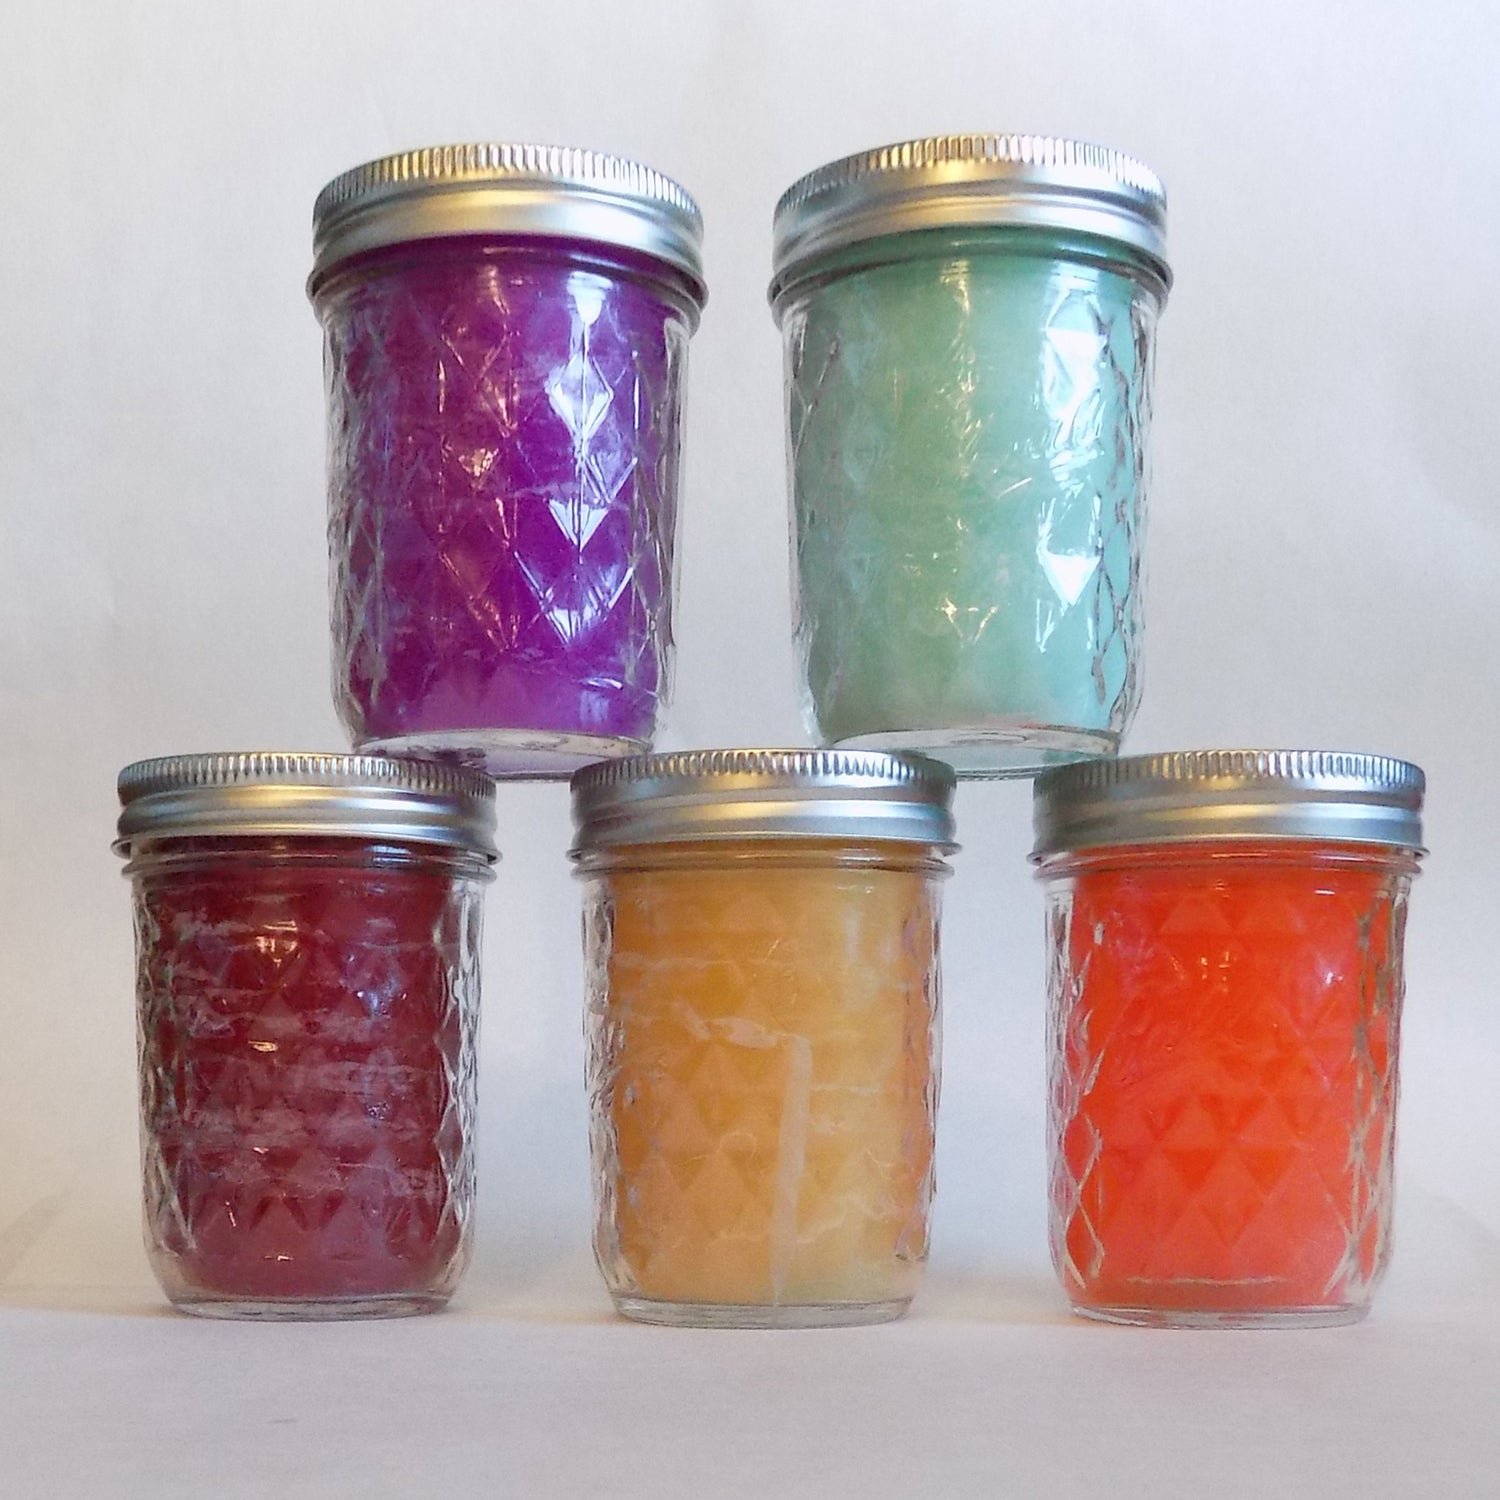 Small Mason Style Jar  Candle - Custom Made Scent and Color to Order